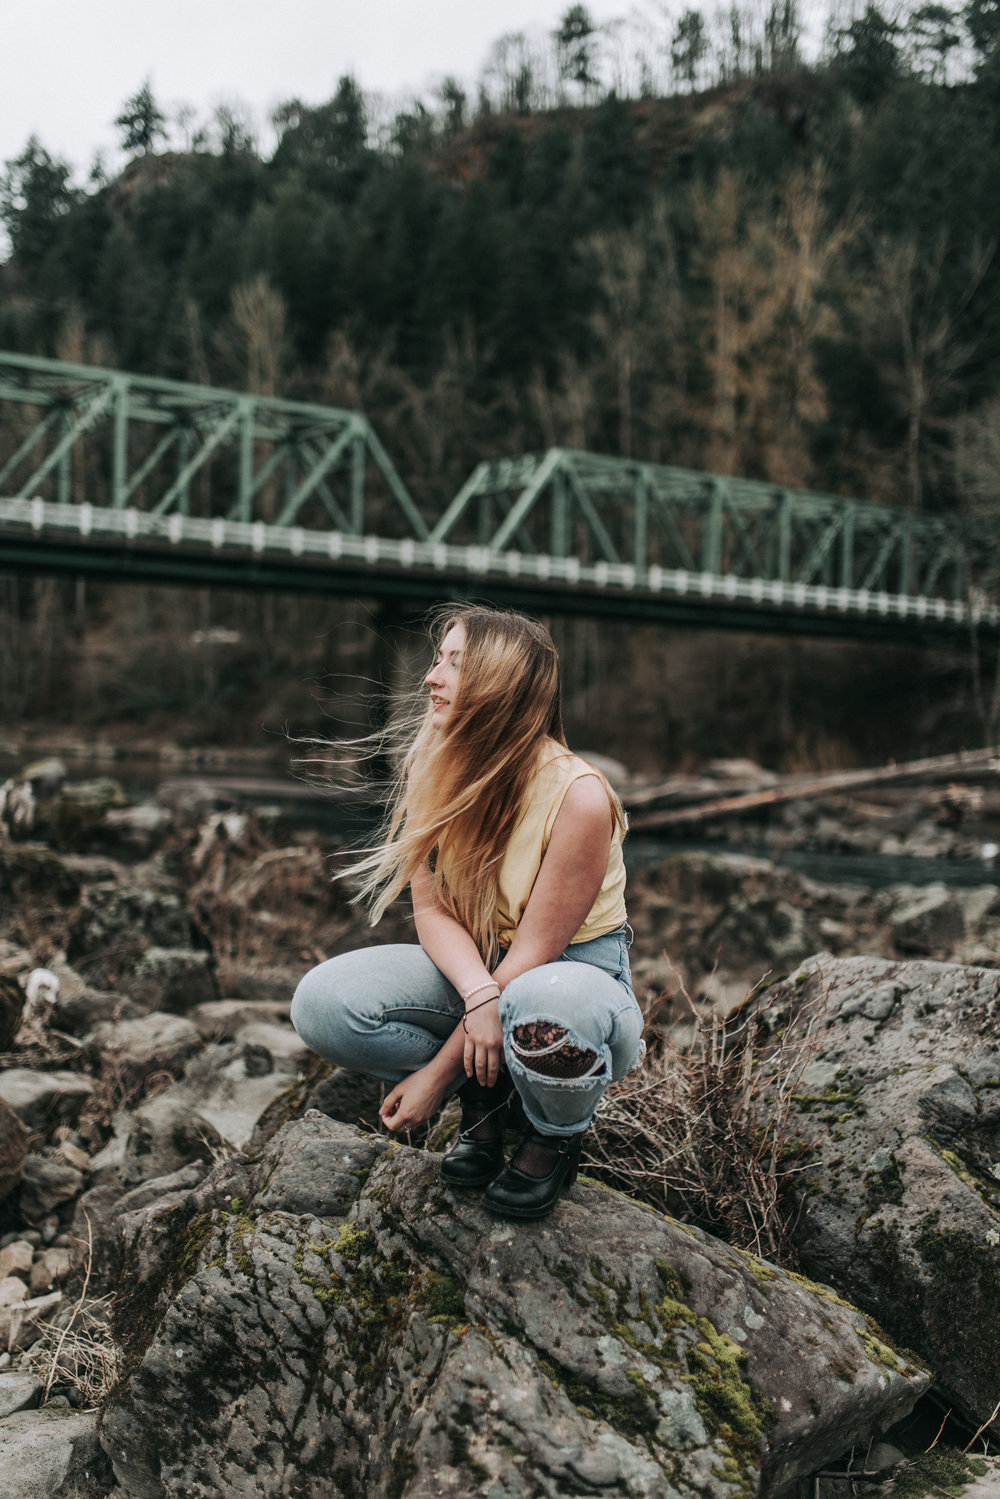 KyleWillisPhoto-Kyle-Willis-Photography-Troutdale-Oregon-Portland-Portrait-Photographer-Abandoned-Photoshoot-Urban-Outfitters-Pacific-Northwest-PNW